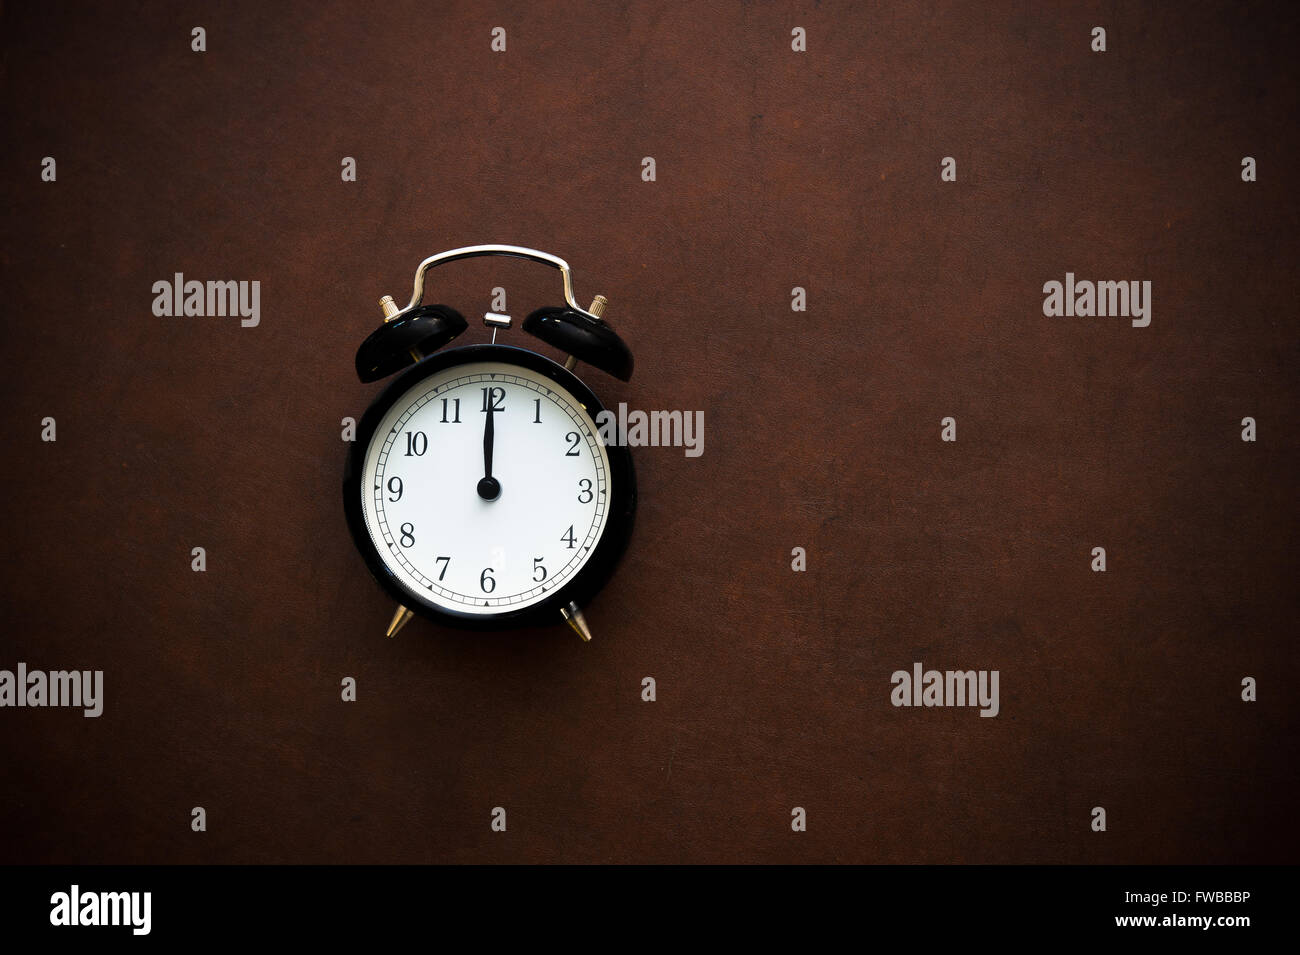 Vintage alarm clock reminder symbol on noon midnight hour on wooden background - Stock Image